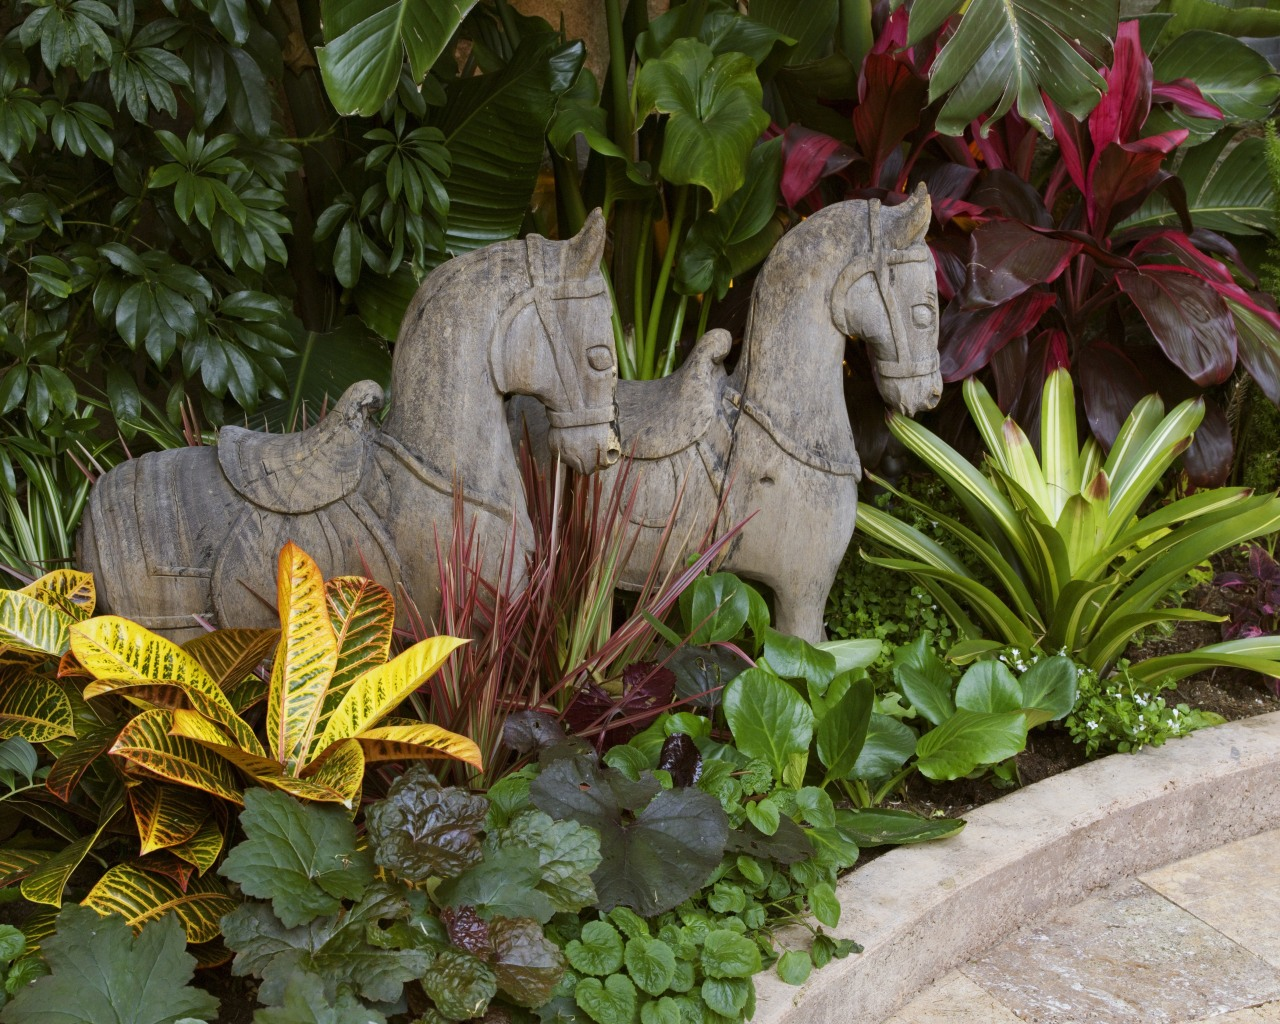 View of two equine sculptures from Bali standing garden, leaf, plant, yard, brown